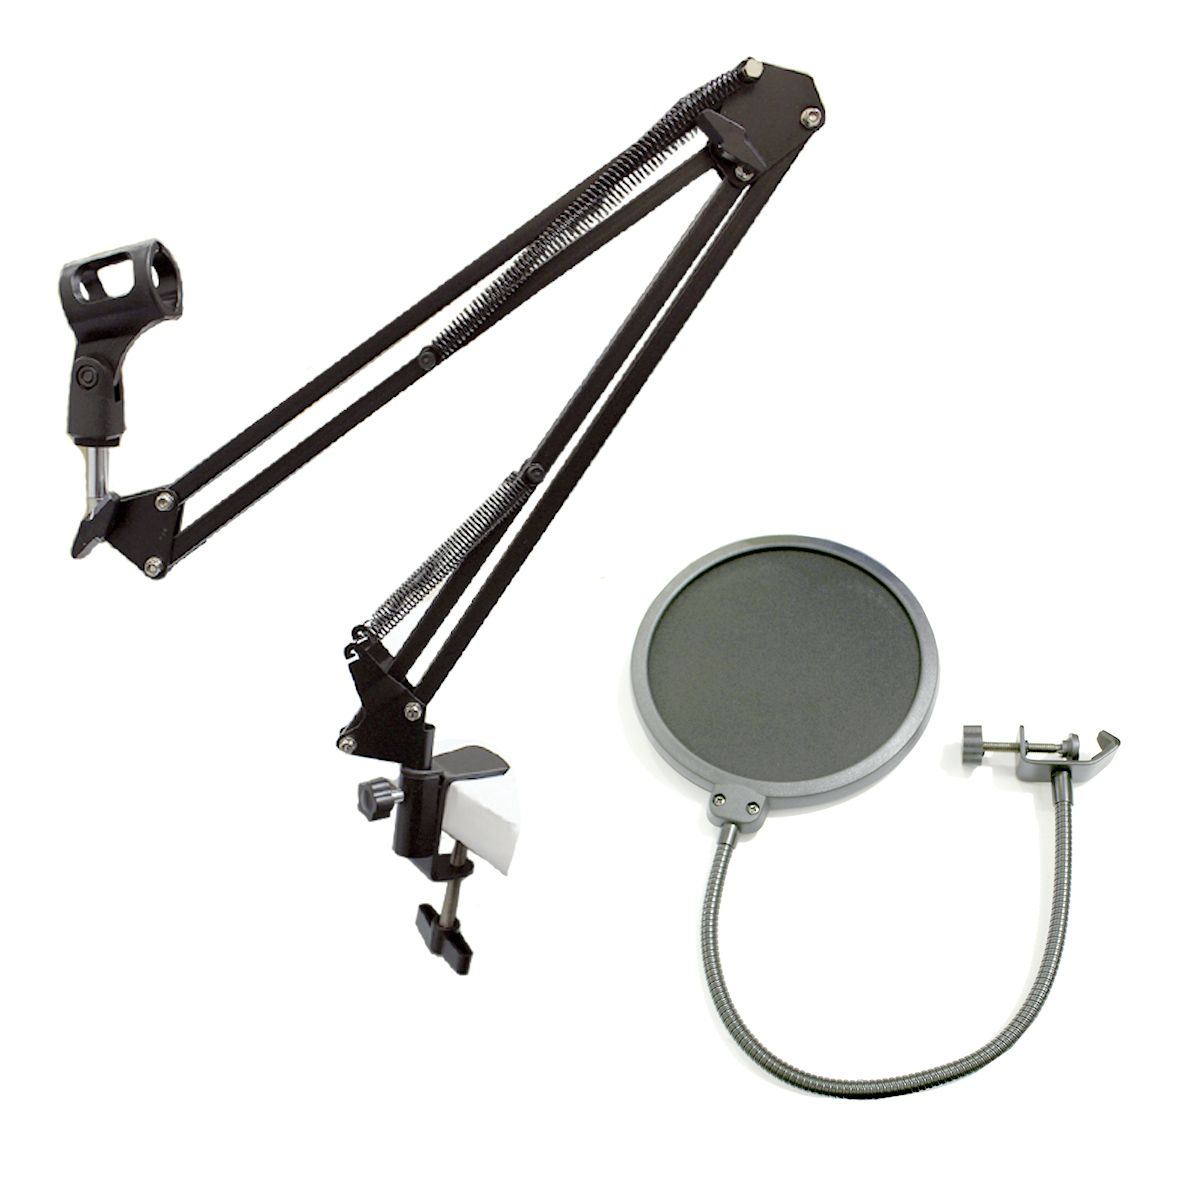 Kit Suporte articulado + Pop Filter NB35 MS15 JIAXI